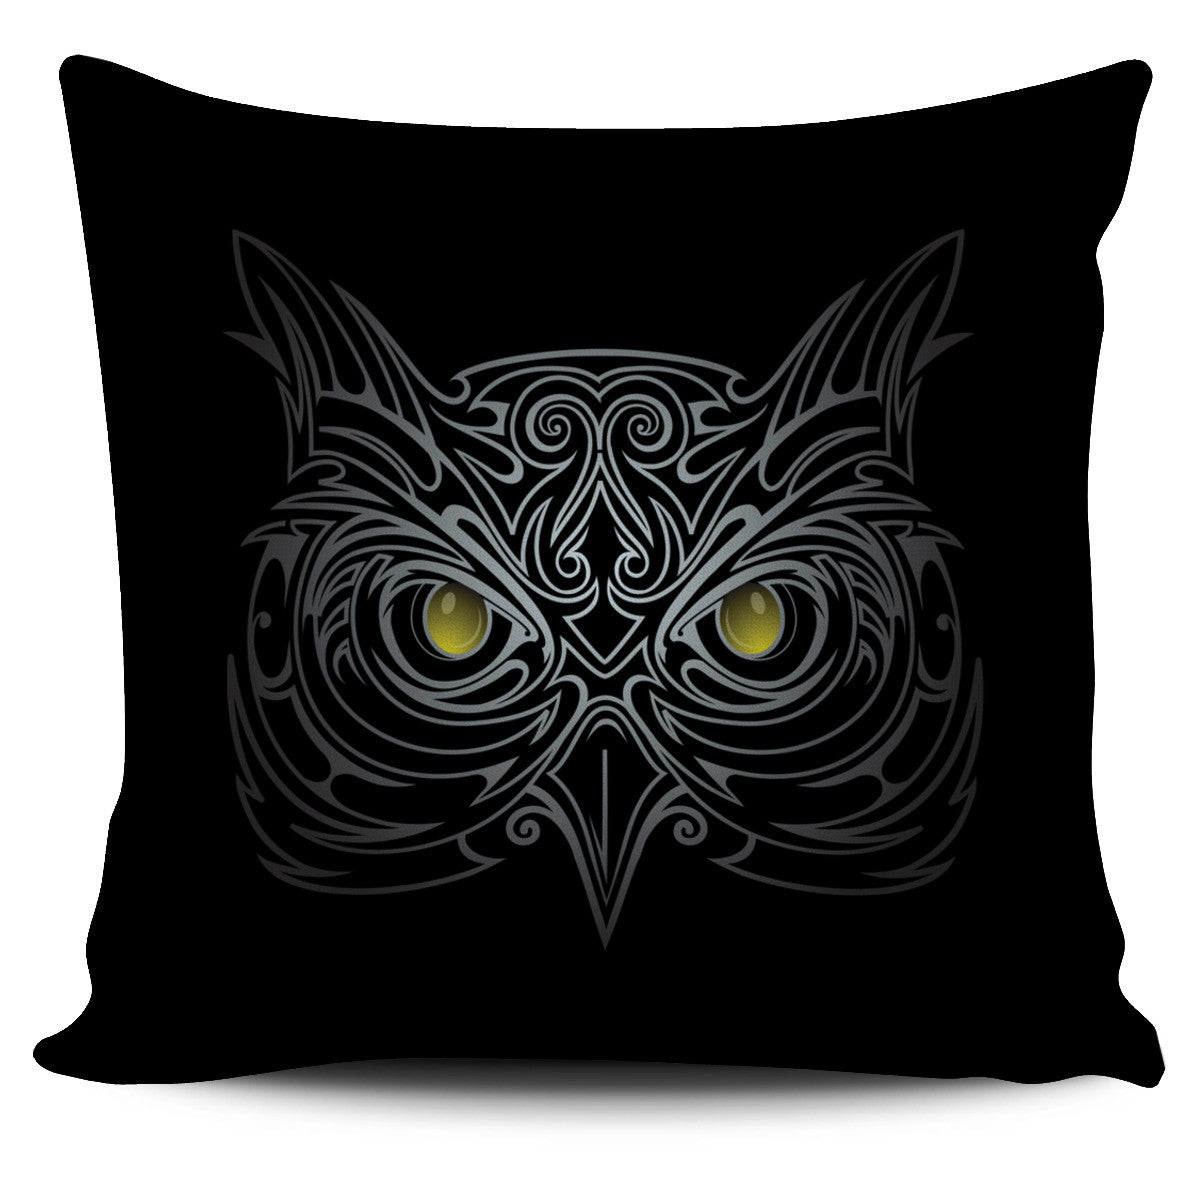 Black Owl Pillow Cover